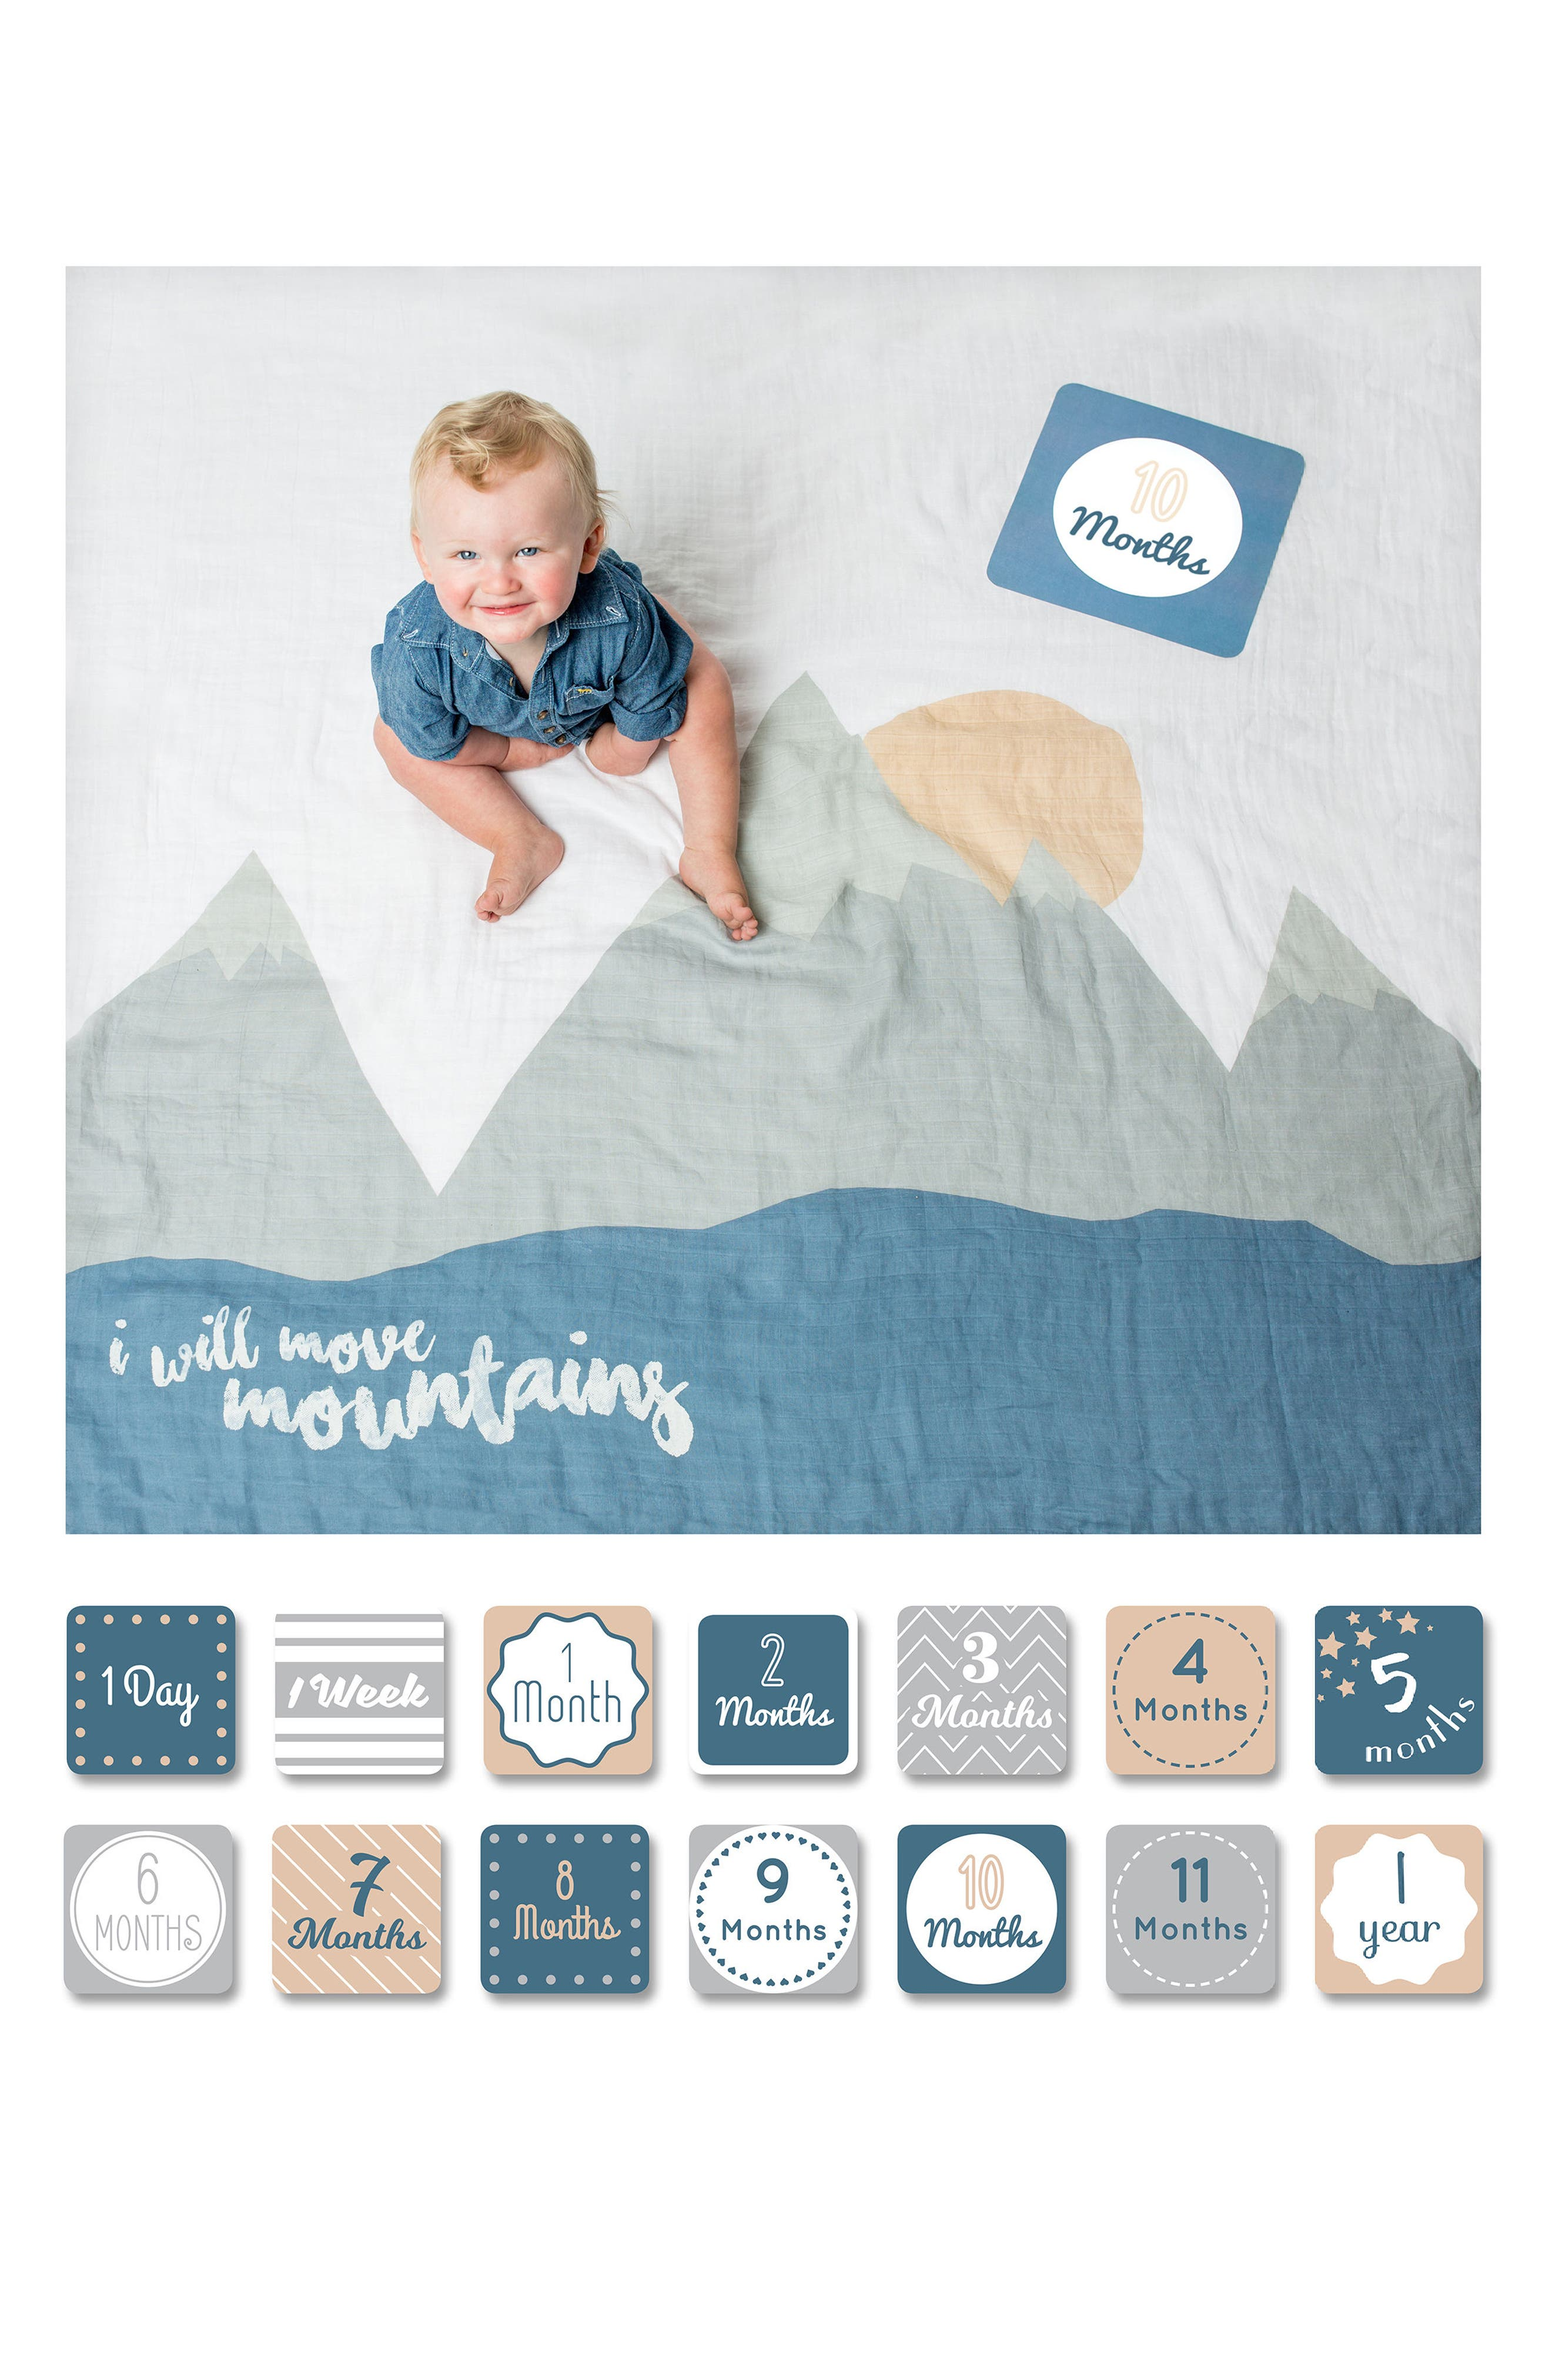 LULUJO, Baby's First Year - I Will Move Mountains Muslin Blanket & Milestone Card Set, Alternate thumbnail 3, color, WILL MOVE MOUNTAINS